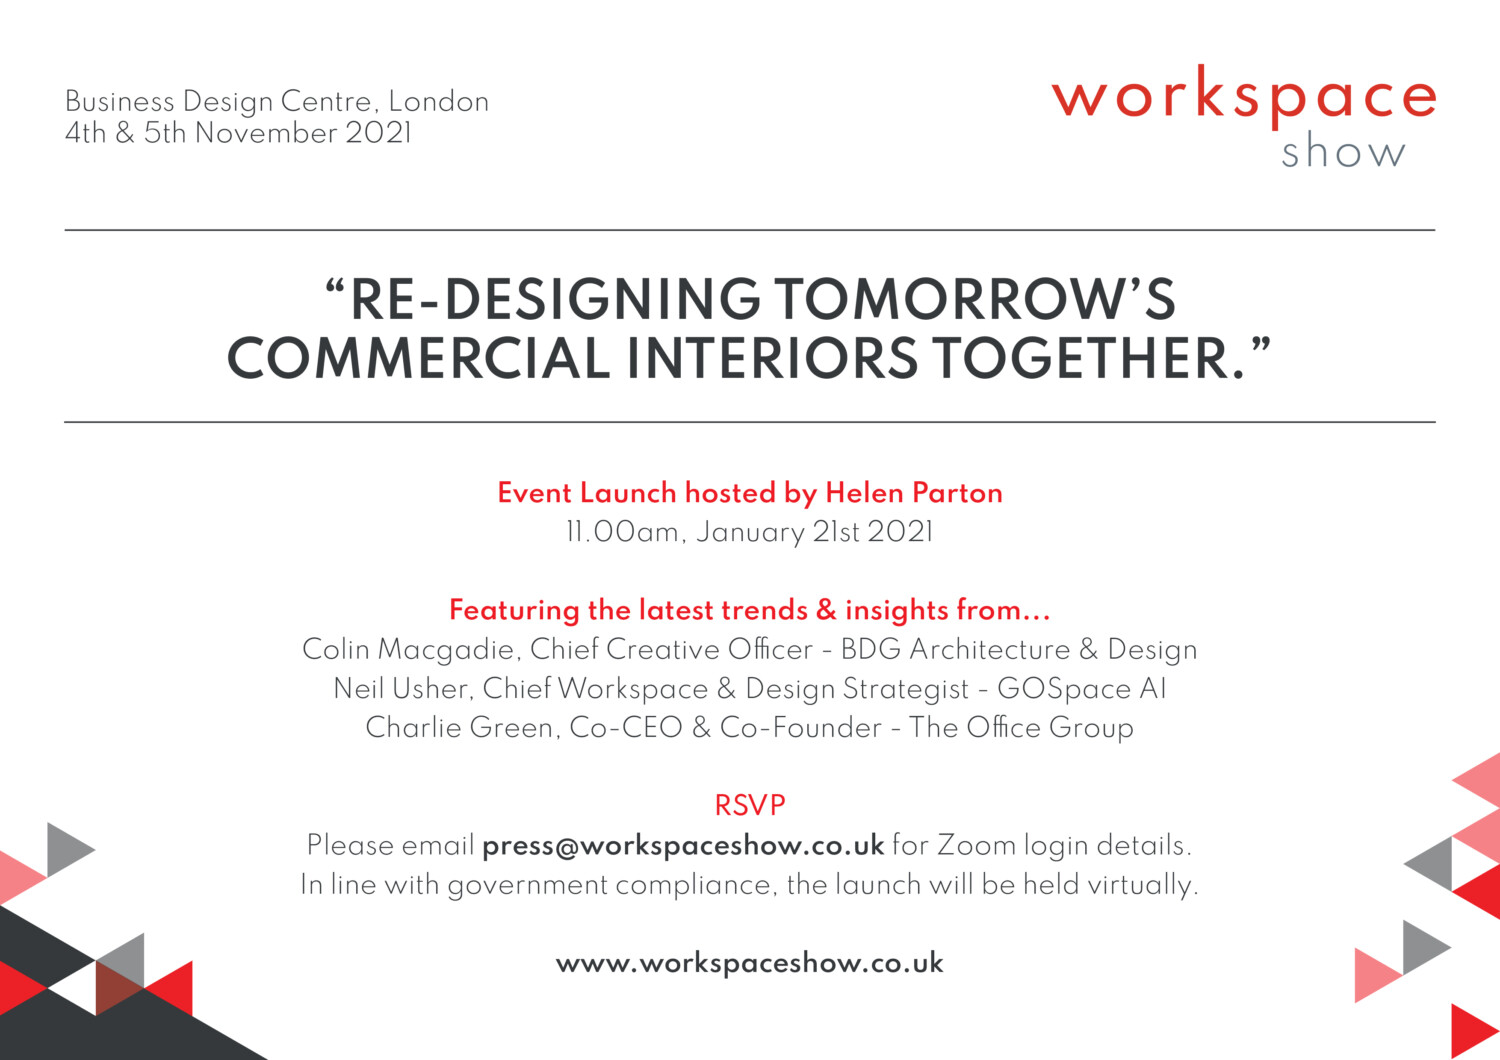 Brand new design event Workspace Show launches in London with a mission to bring together the commercial interiors community.